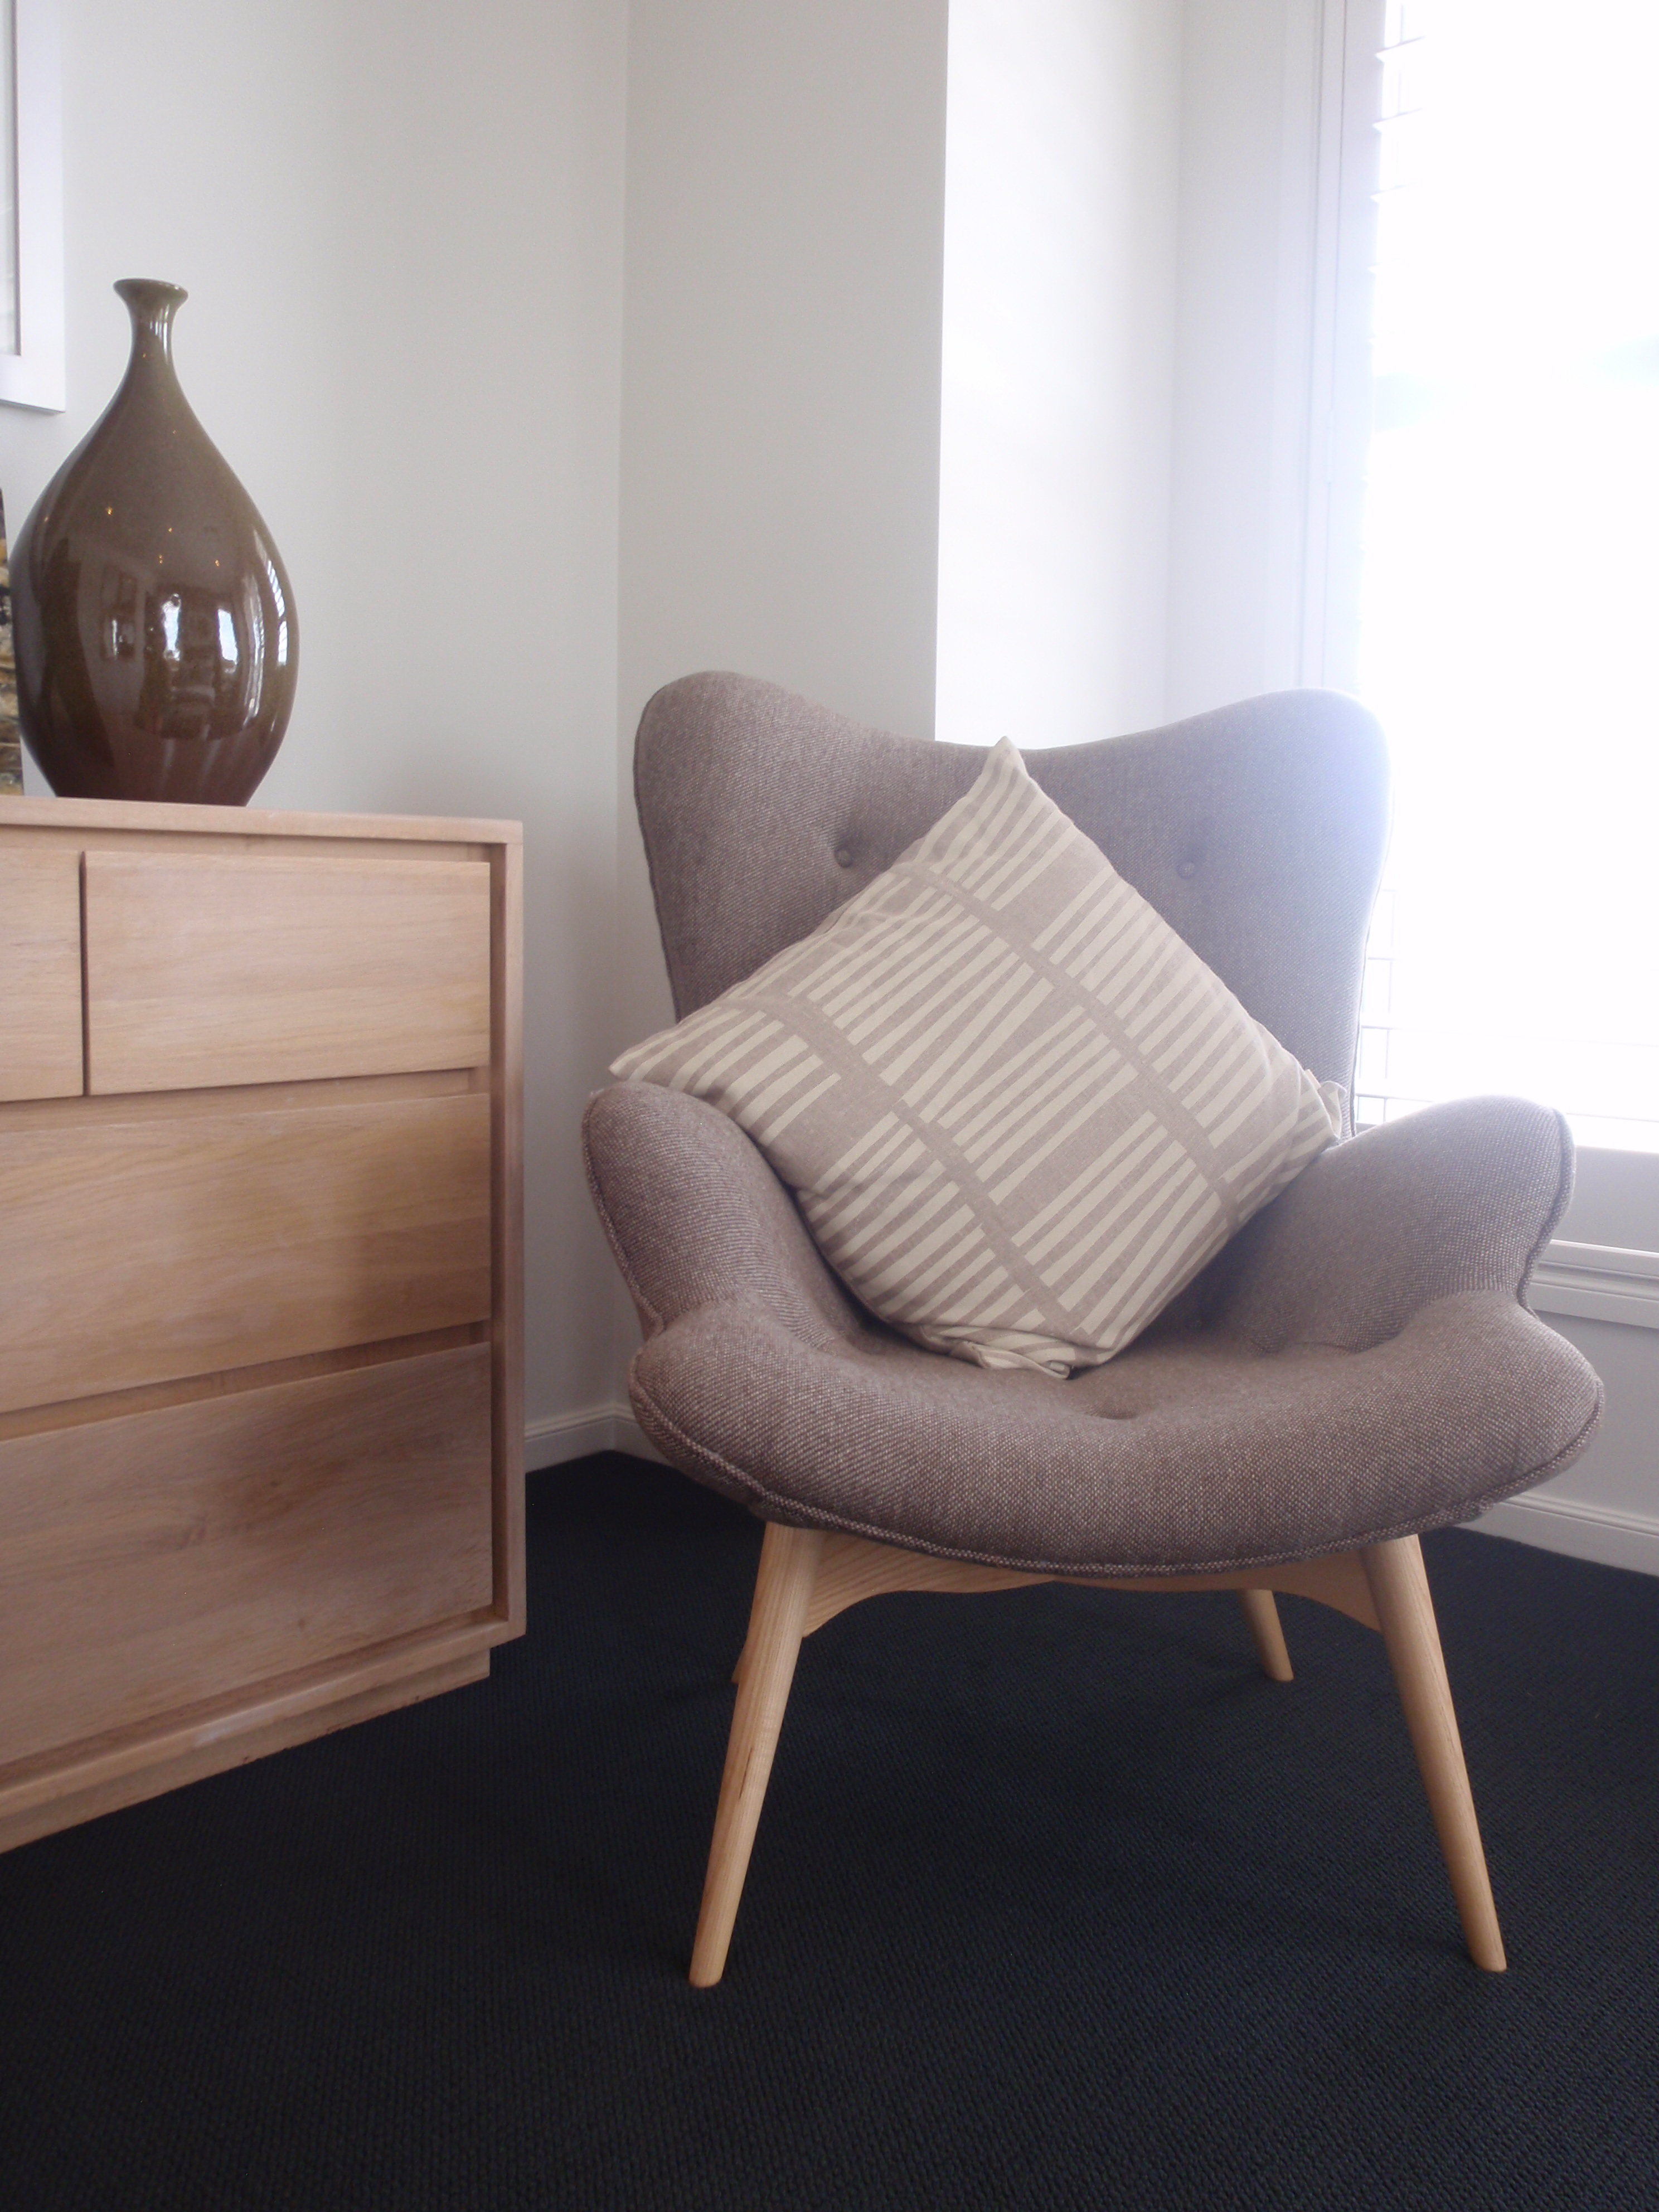 small bedroom chairs with armrests small armchair farnichar bed modern chairs brown bedroom chair HENHYVZ